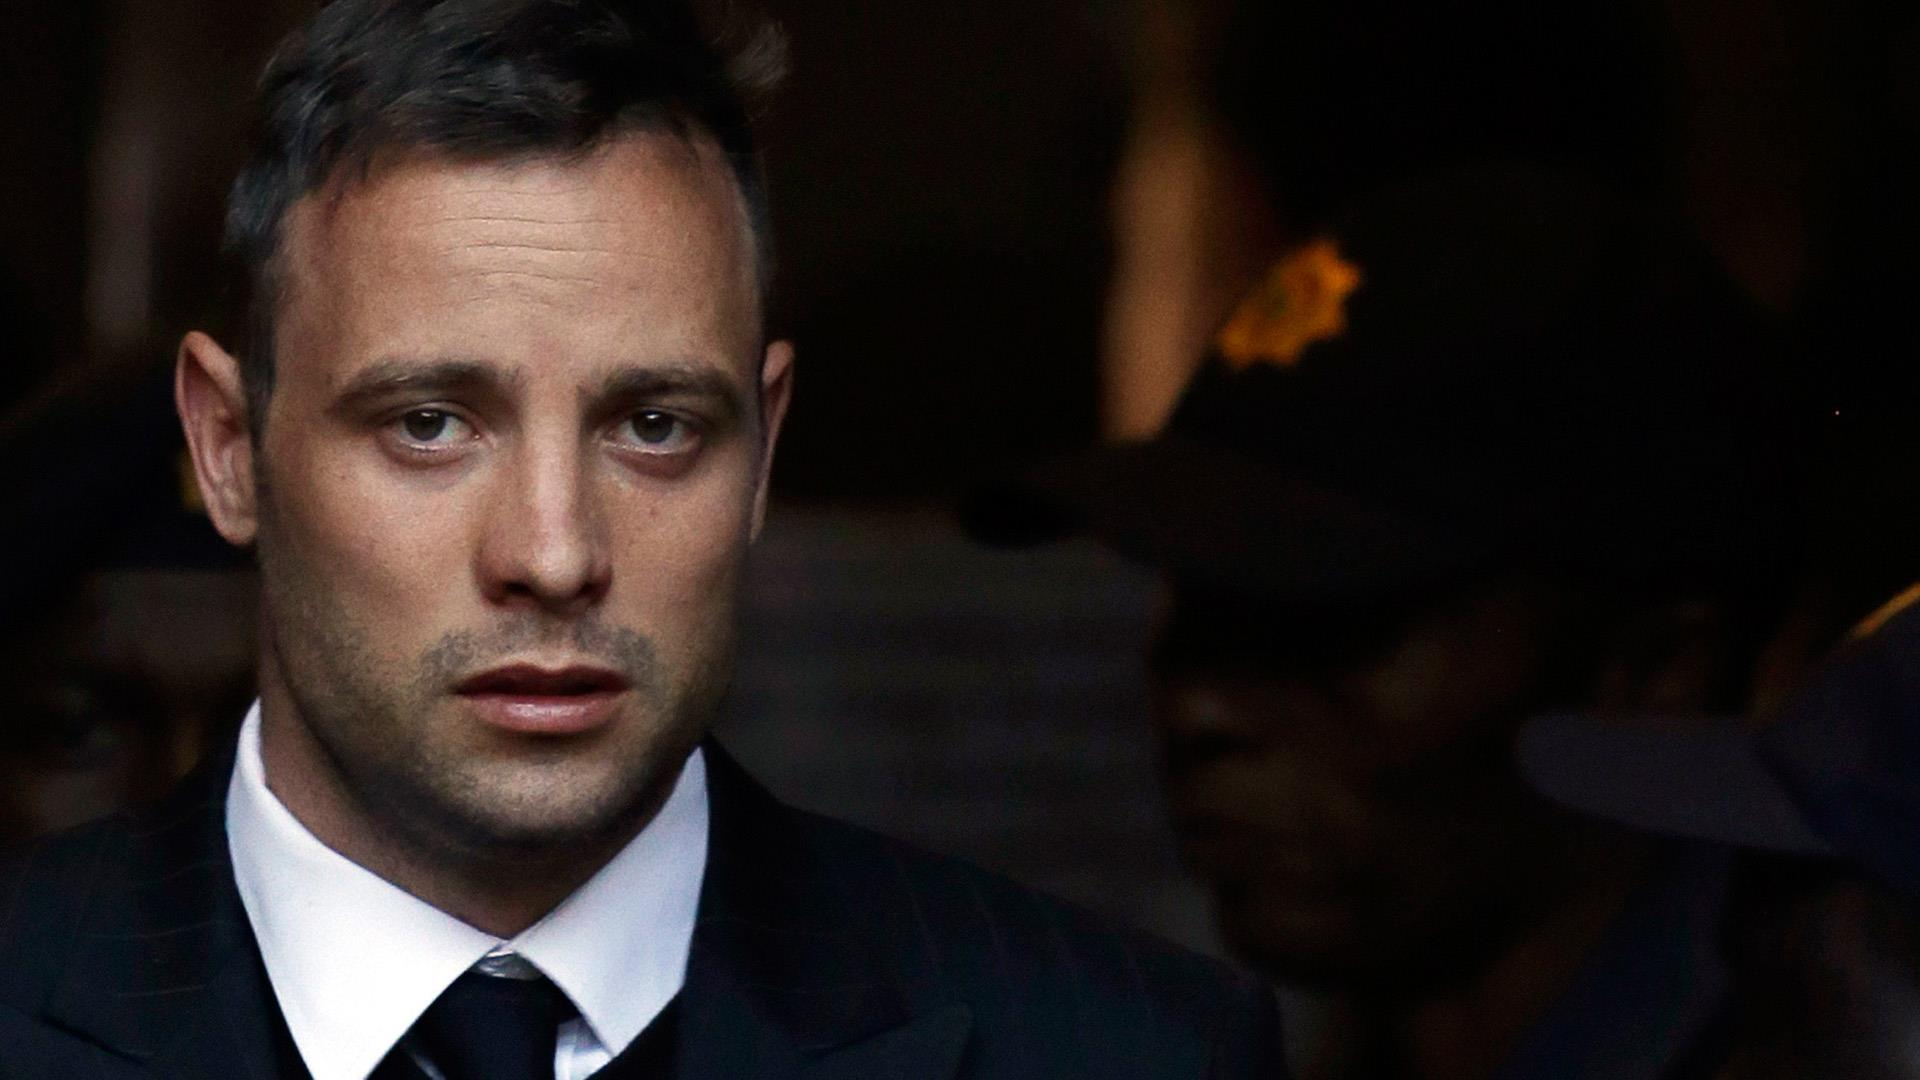 Oscar Pistorius Reeva Steenk  Flirtand Kiss Shop Ten Days Shot Dead as well Justin Gatlin Kingston Invitational Track And Field Shelly Ann Fraser Pryce Lashawn Merritt Sanya Richards Ross additionally Oscar Pistorius Prison Release Put Hold South African Justice Department N412386 additionally Top 10 Celebrities Killed People in addition Rod Stewart Reeva Steenk  Murder Oscar Pistorious Blade Runner. on oscar pistorius murder